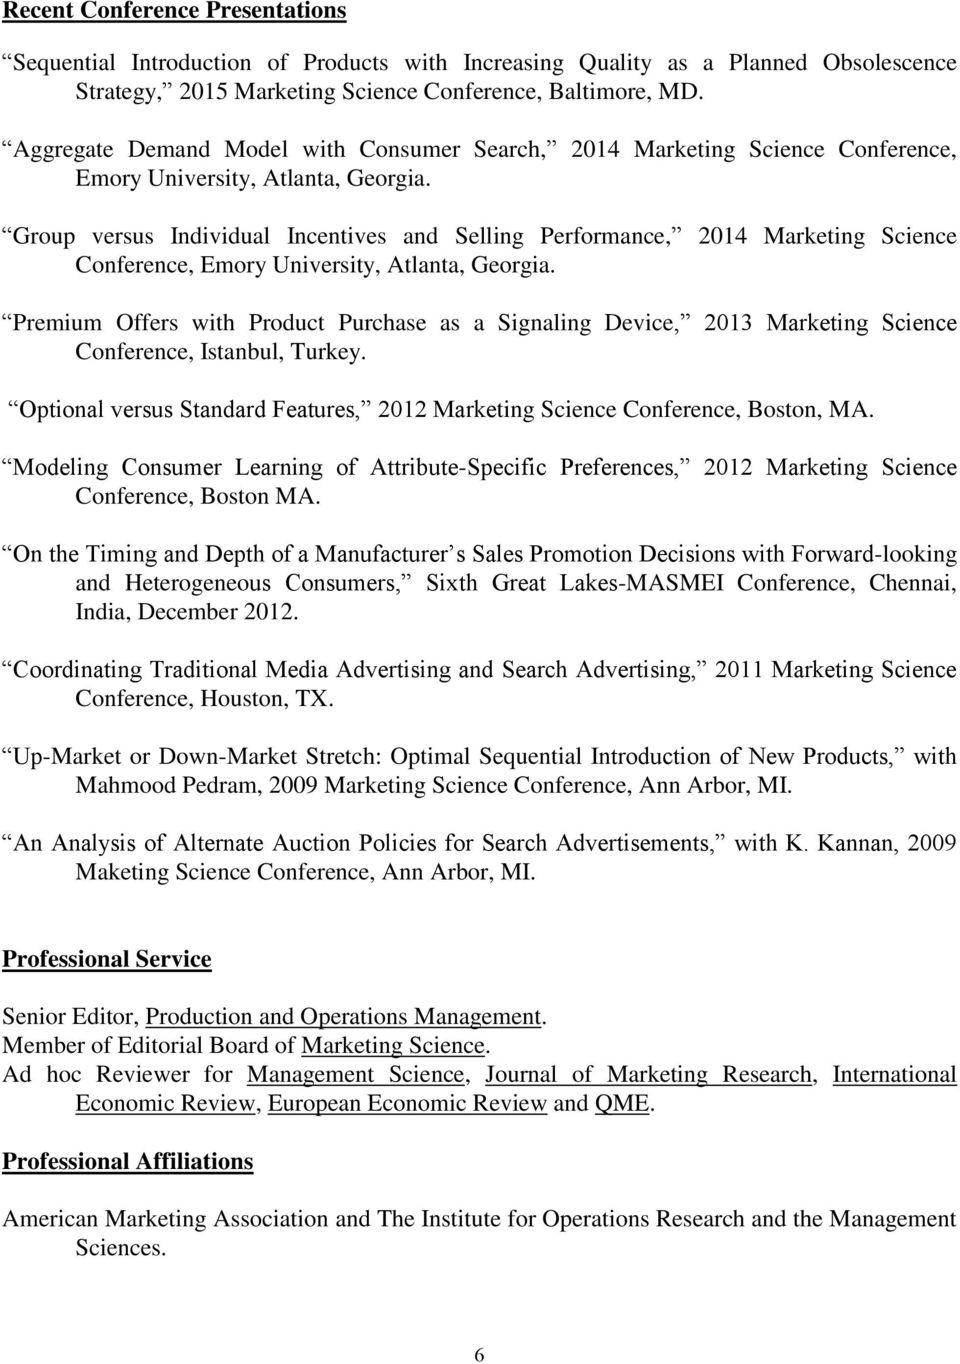 Group versus Individual Incentives and Selling Performance, 2014 Marketing Science Conference, Emory University, Atlanta, Georgia.